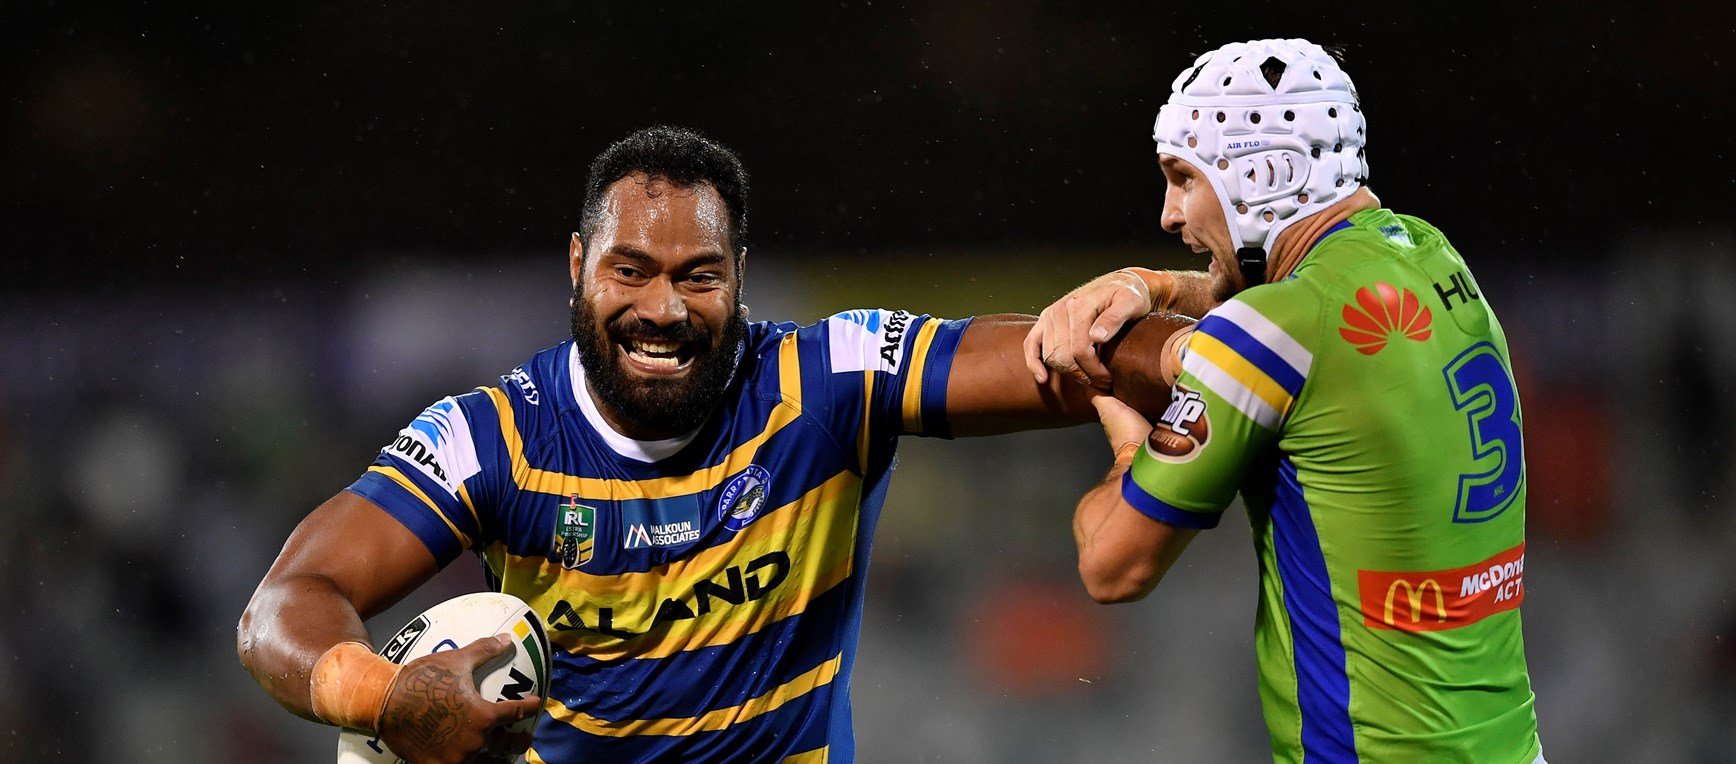 Raiders v Eels in Photos